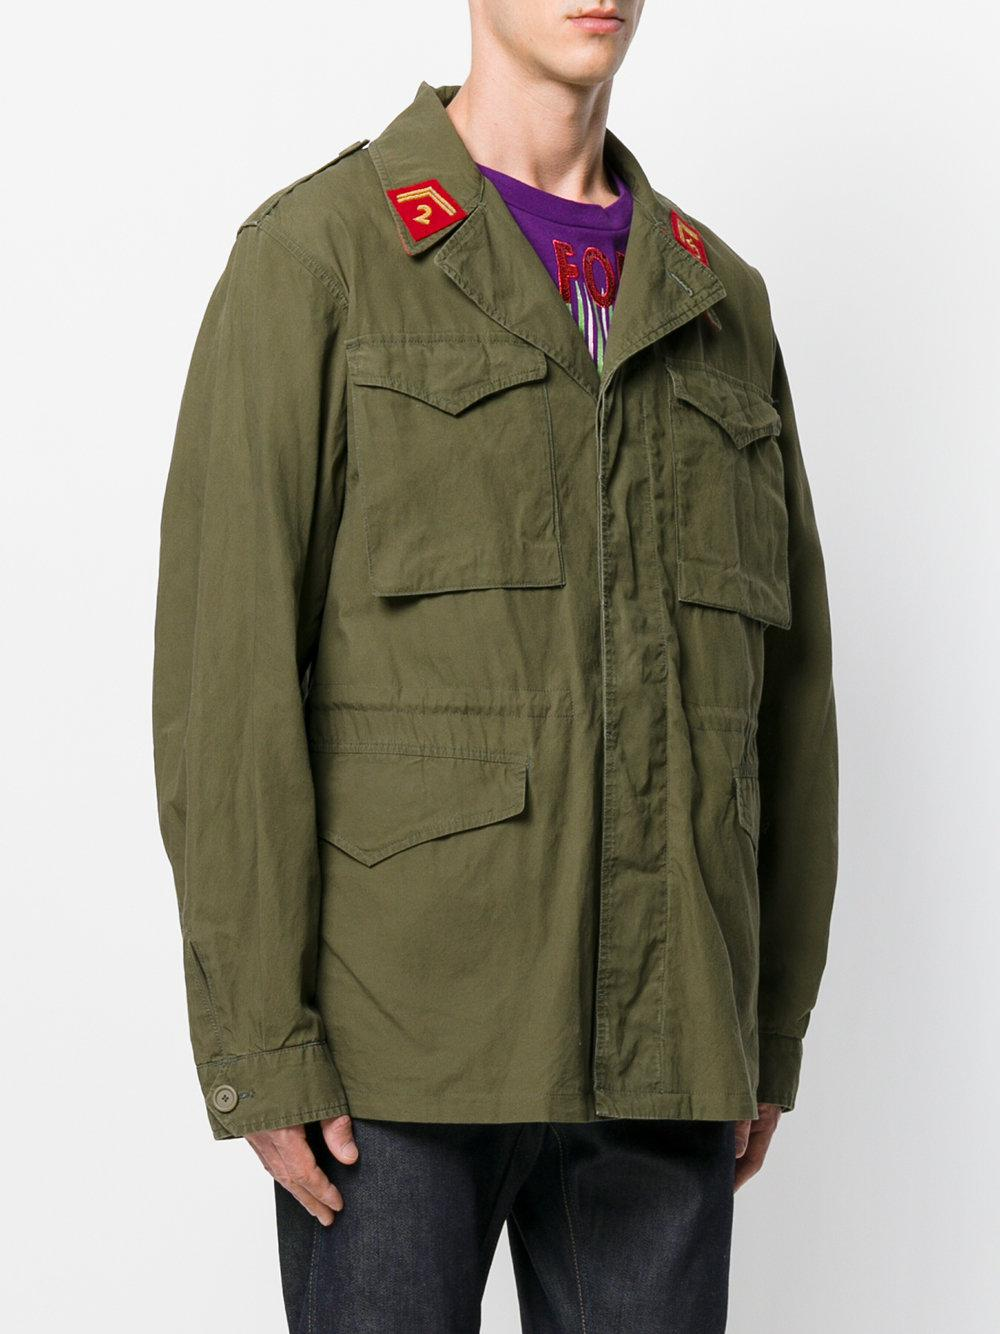 Lyst Gucci Printed Cargo Jacket In Green For Men